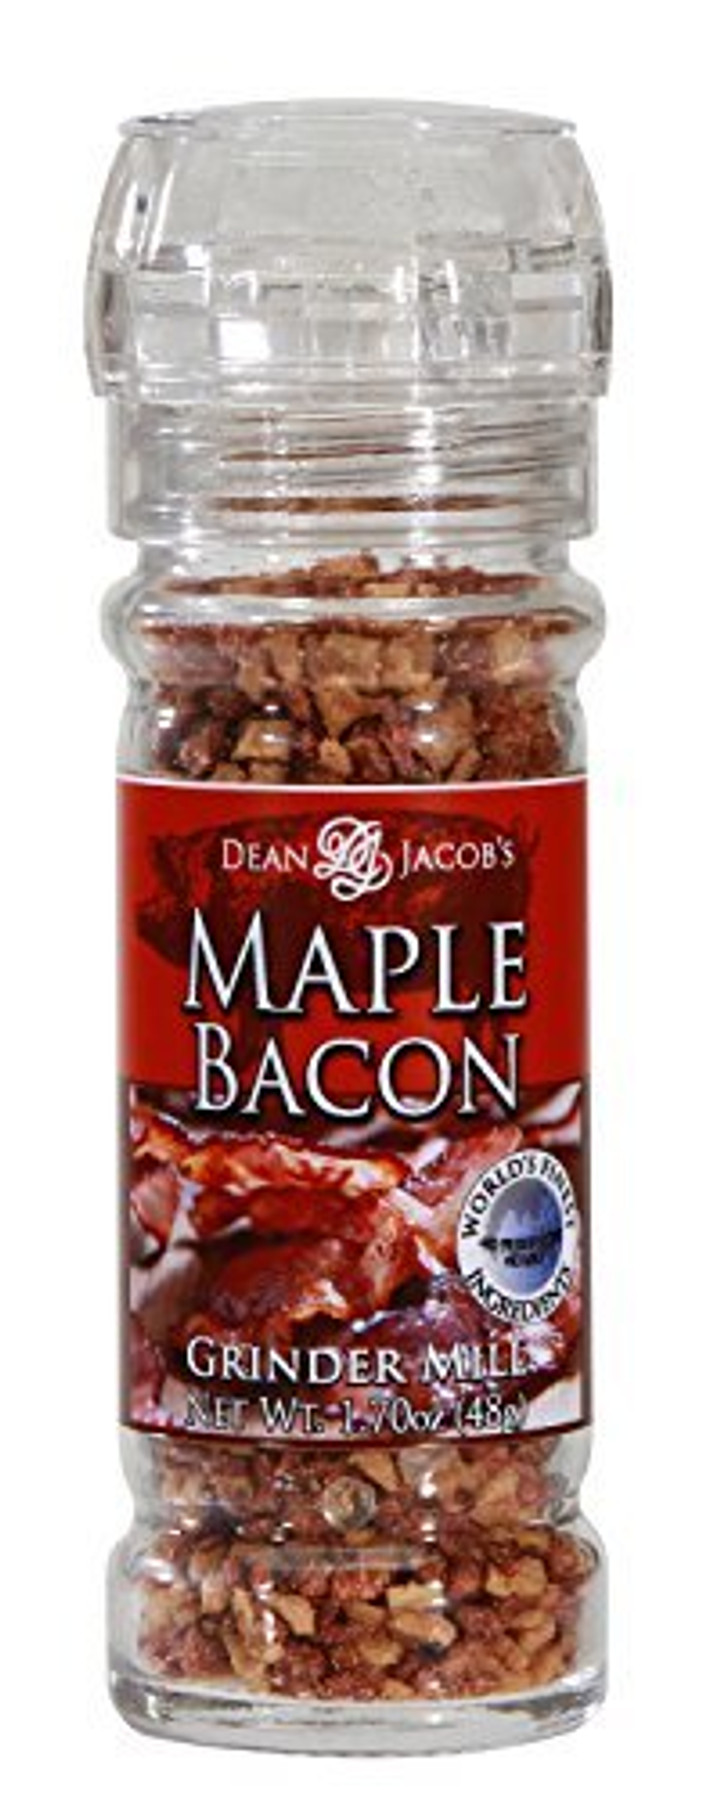 Maple Bacon Grinder by Dean Jacobs. Buy at Pepper Explosion